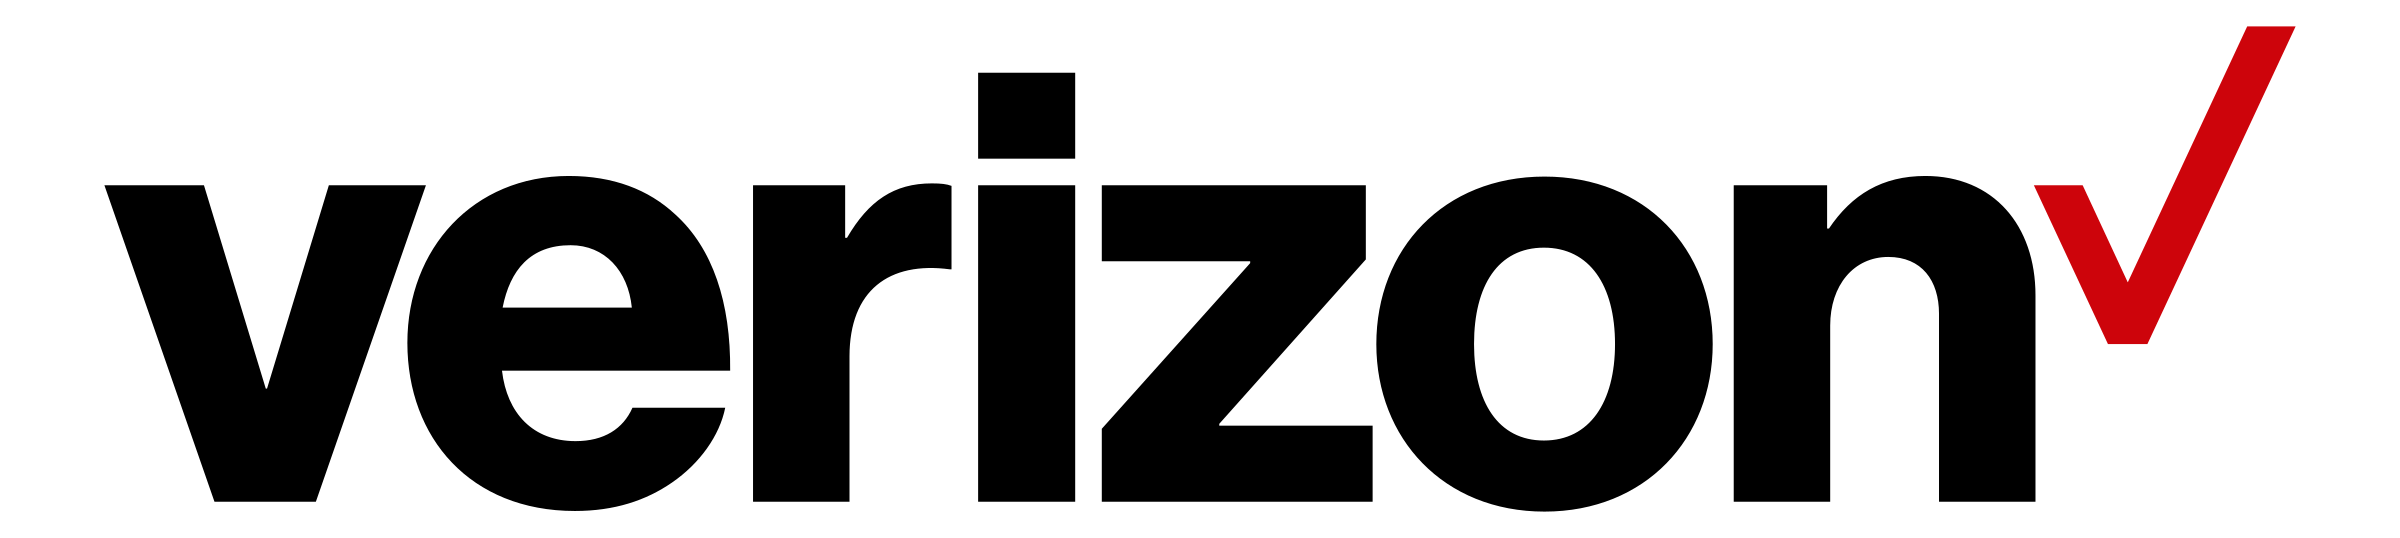 verizon-logo-transparent.png